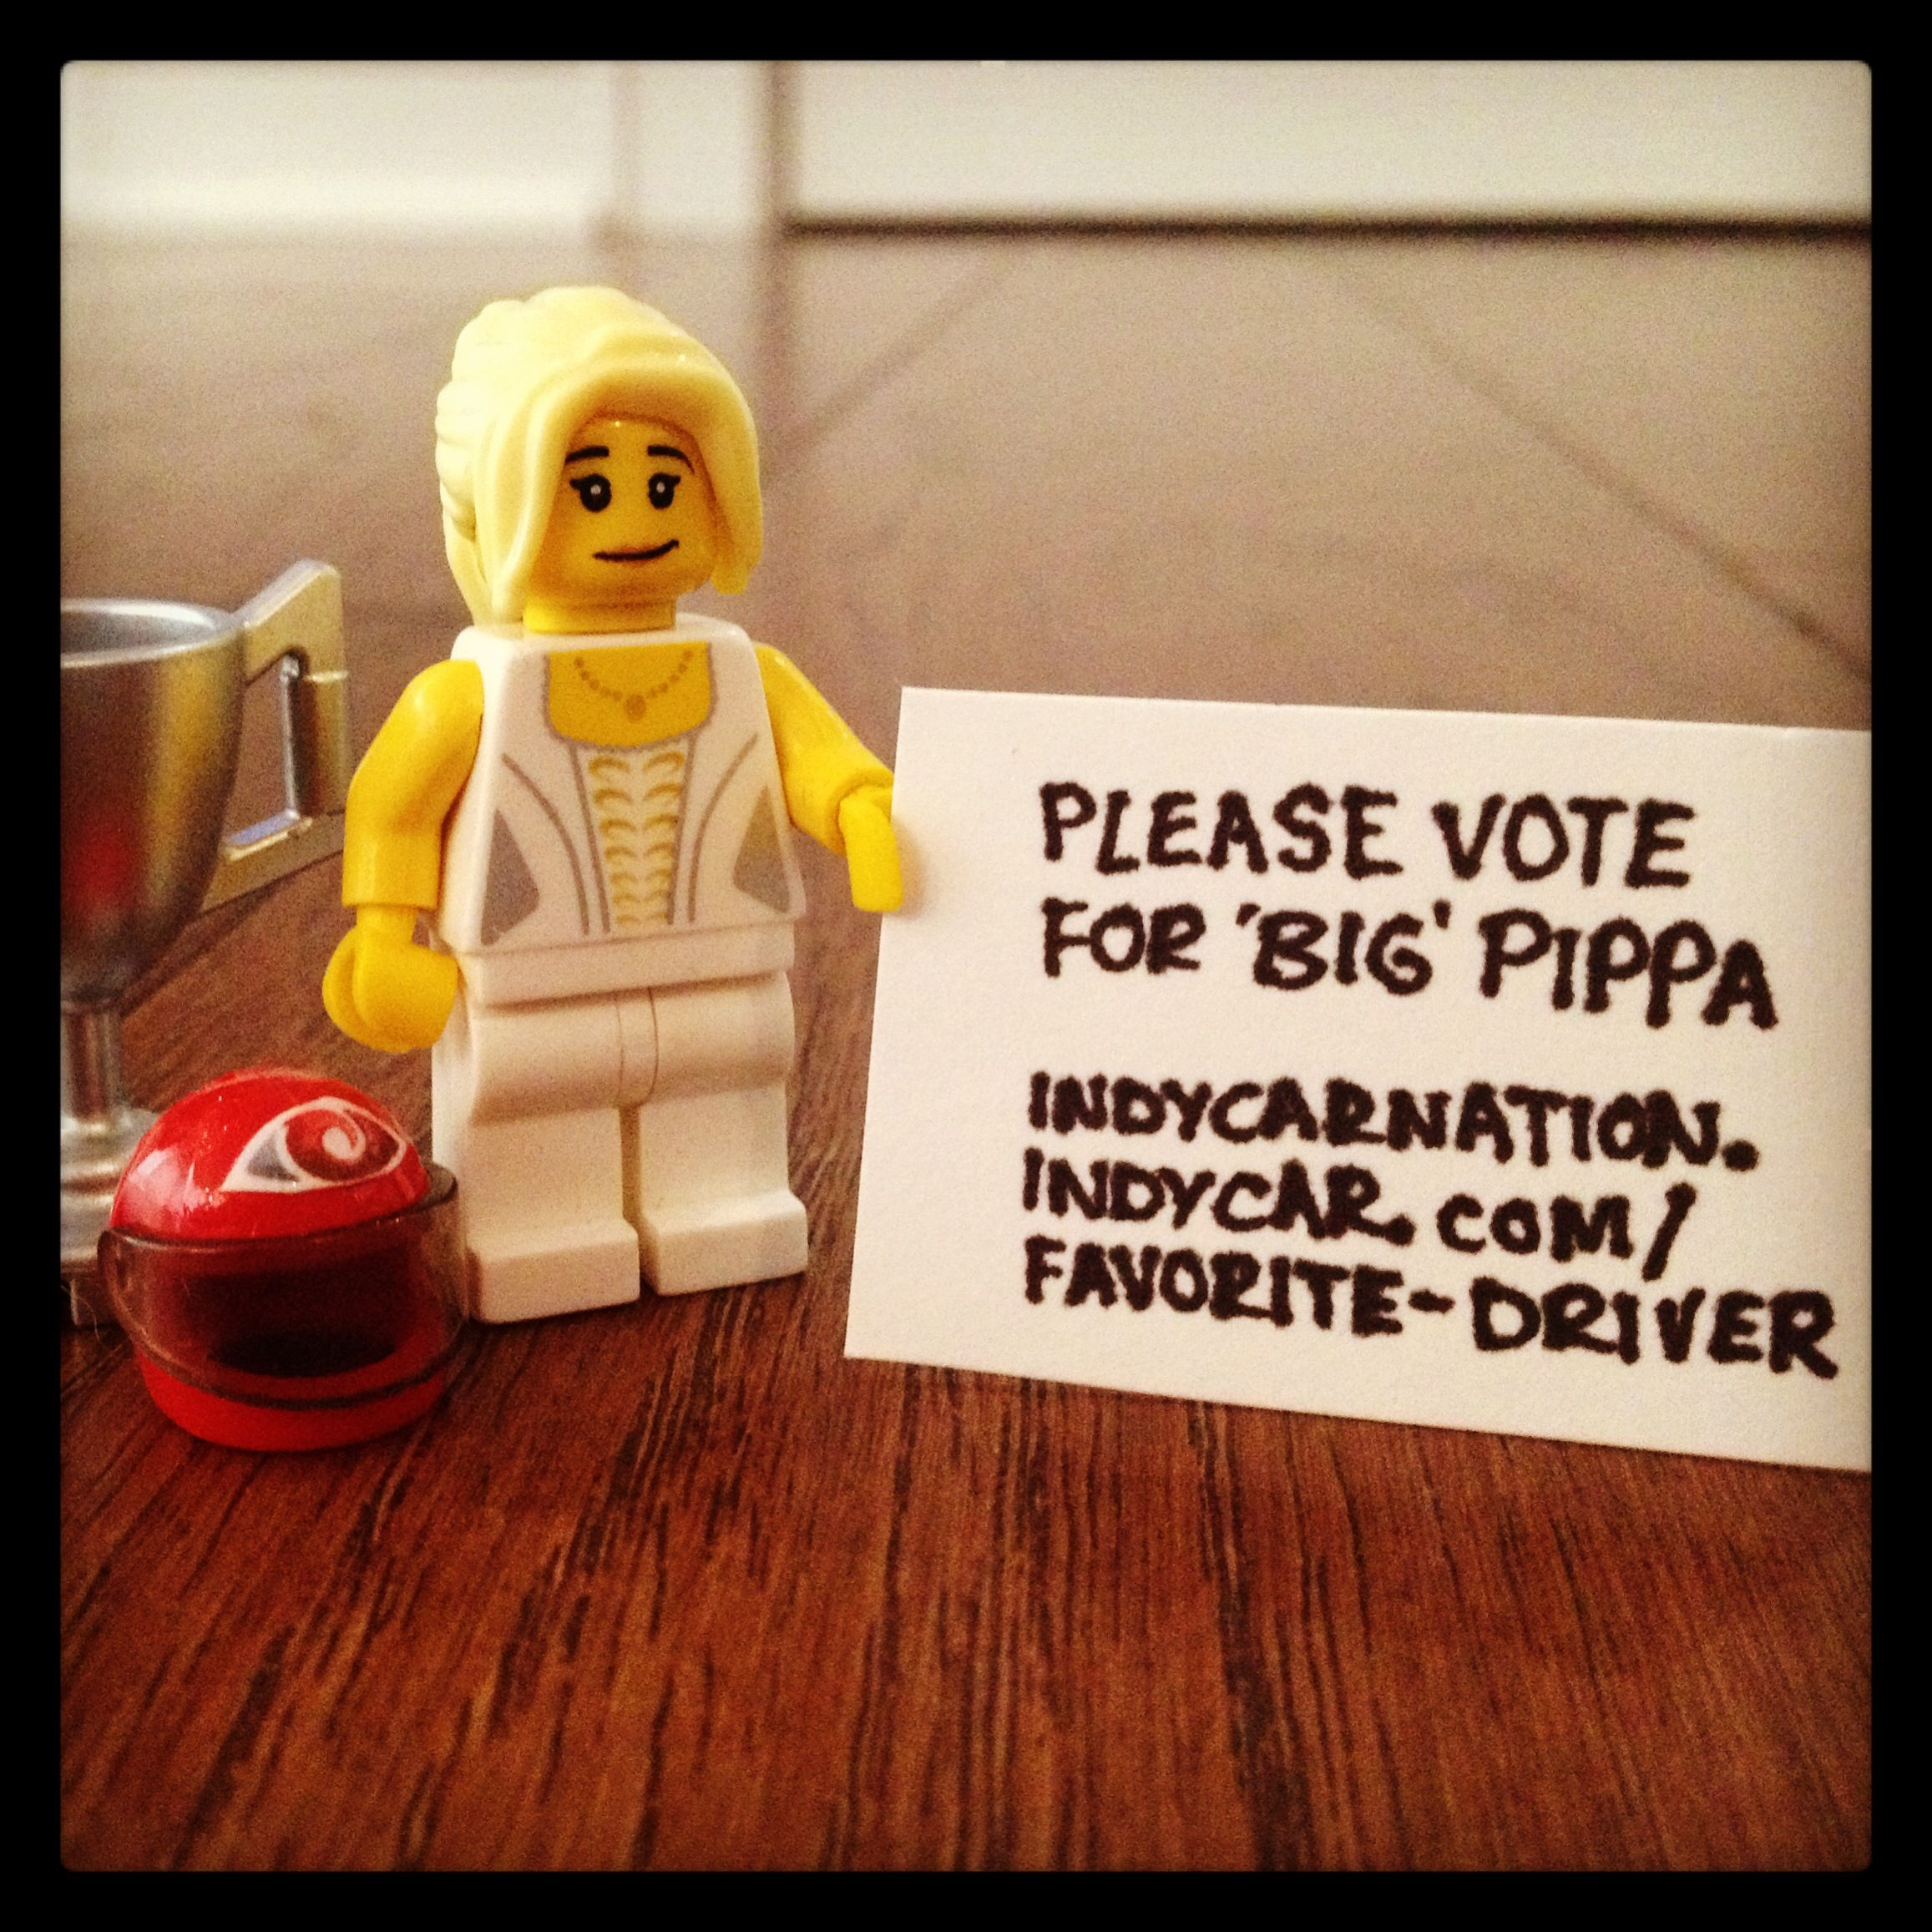 I asked #LittlePippa to help me out, see if we could get another vote or two between us!! :) #DoWhatSheSays #TeamCyclopsGear #Indycar